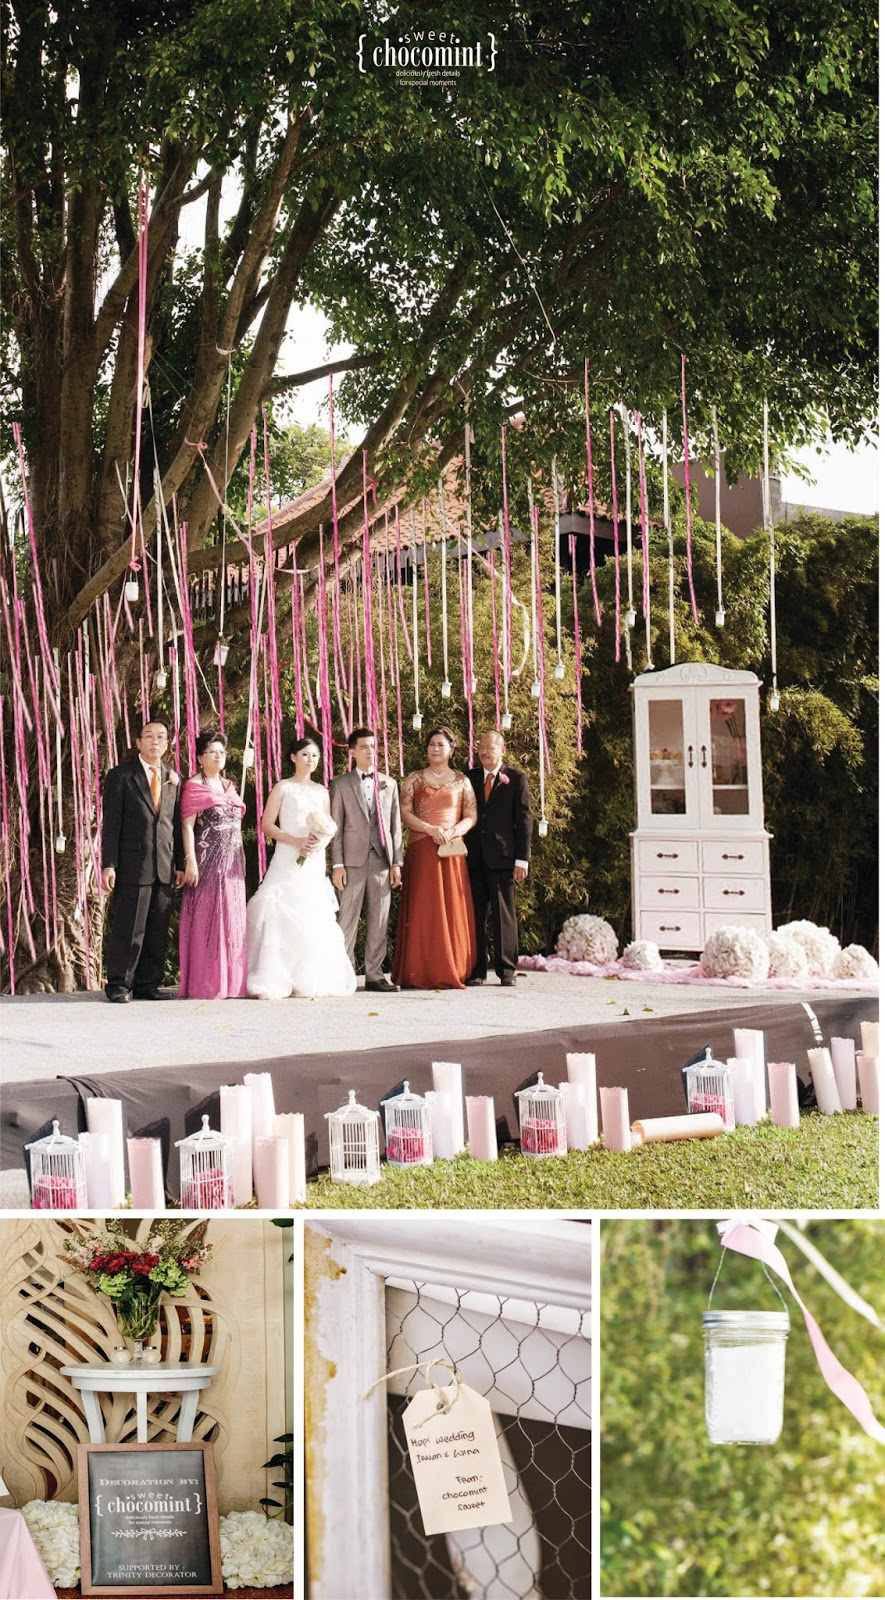 Fuchsia wedding decoration bandung gallery wedding dress wedding decoration padma bandung images wedding dress decoration fuchsia wedding decoration bandung gallery wedding dress wedding junglespirit Image collections